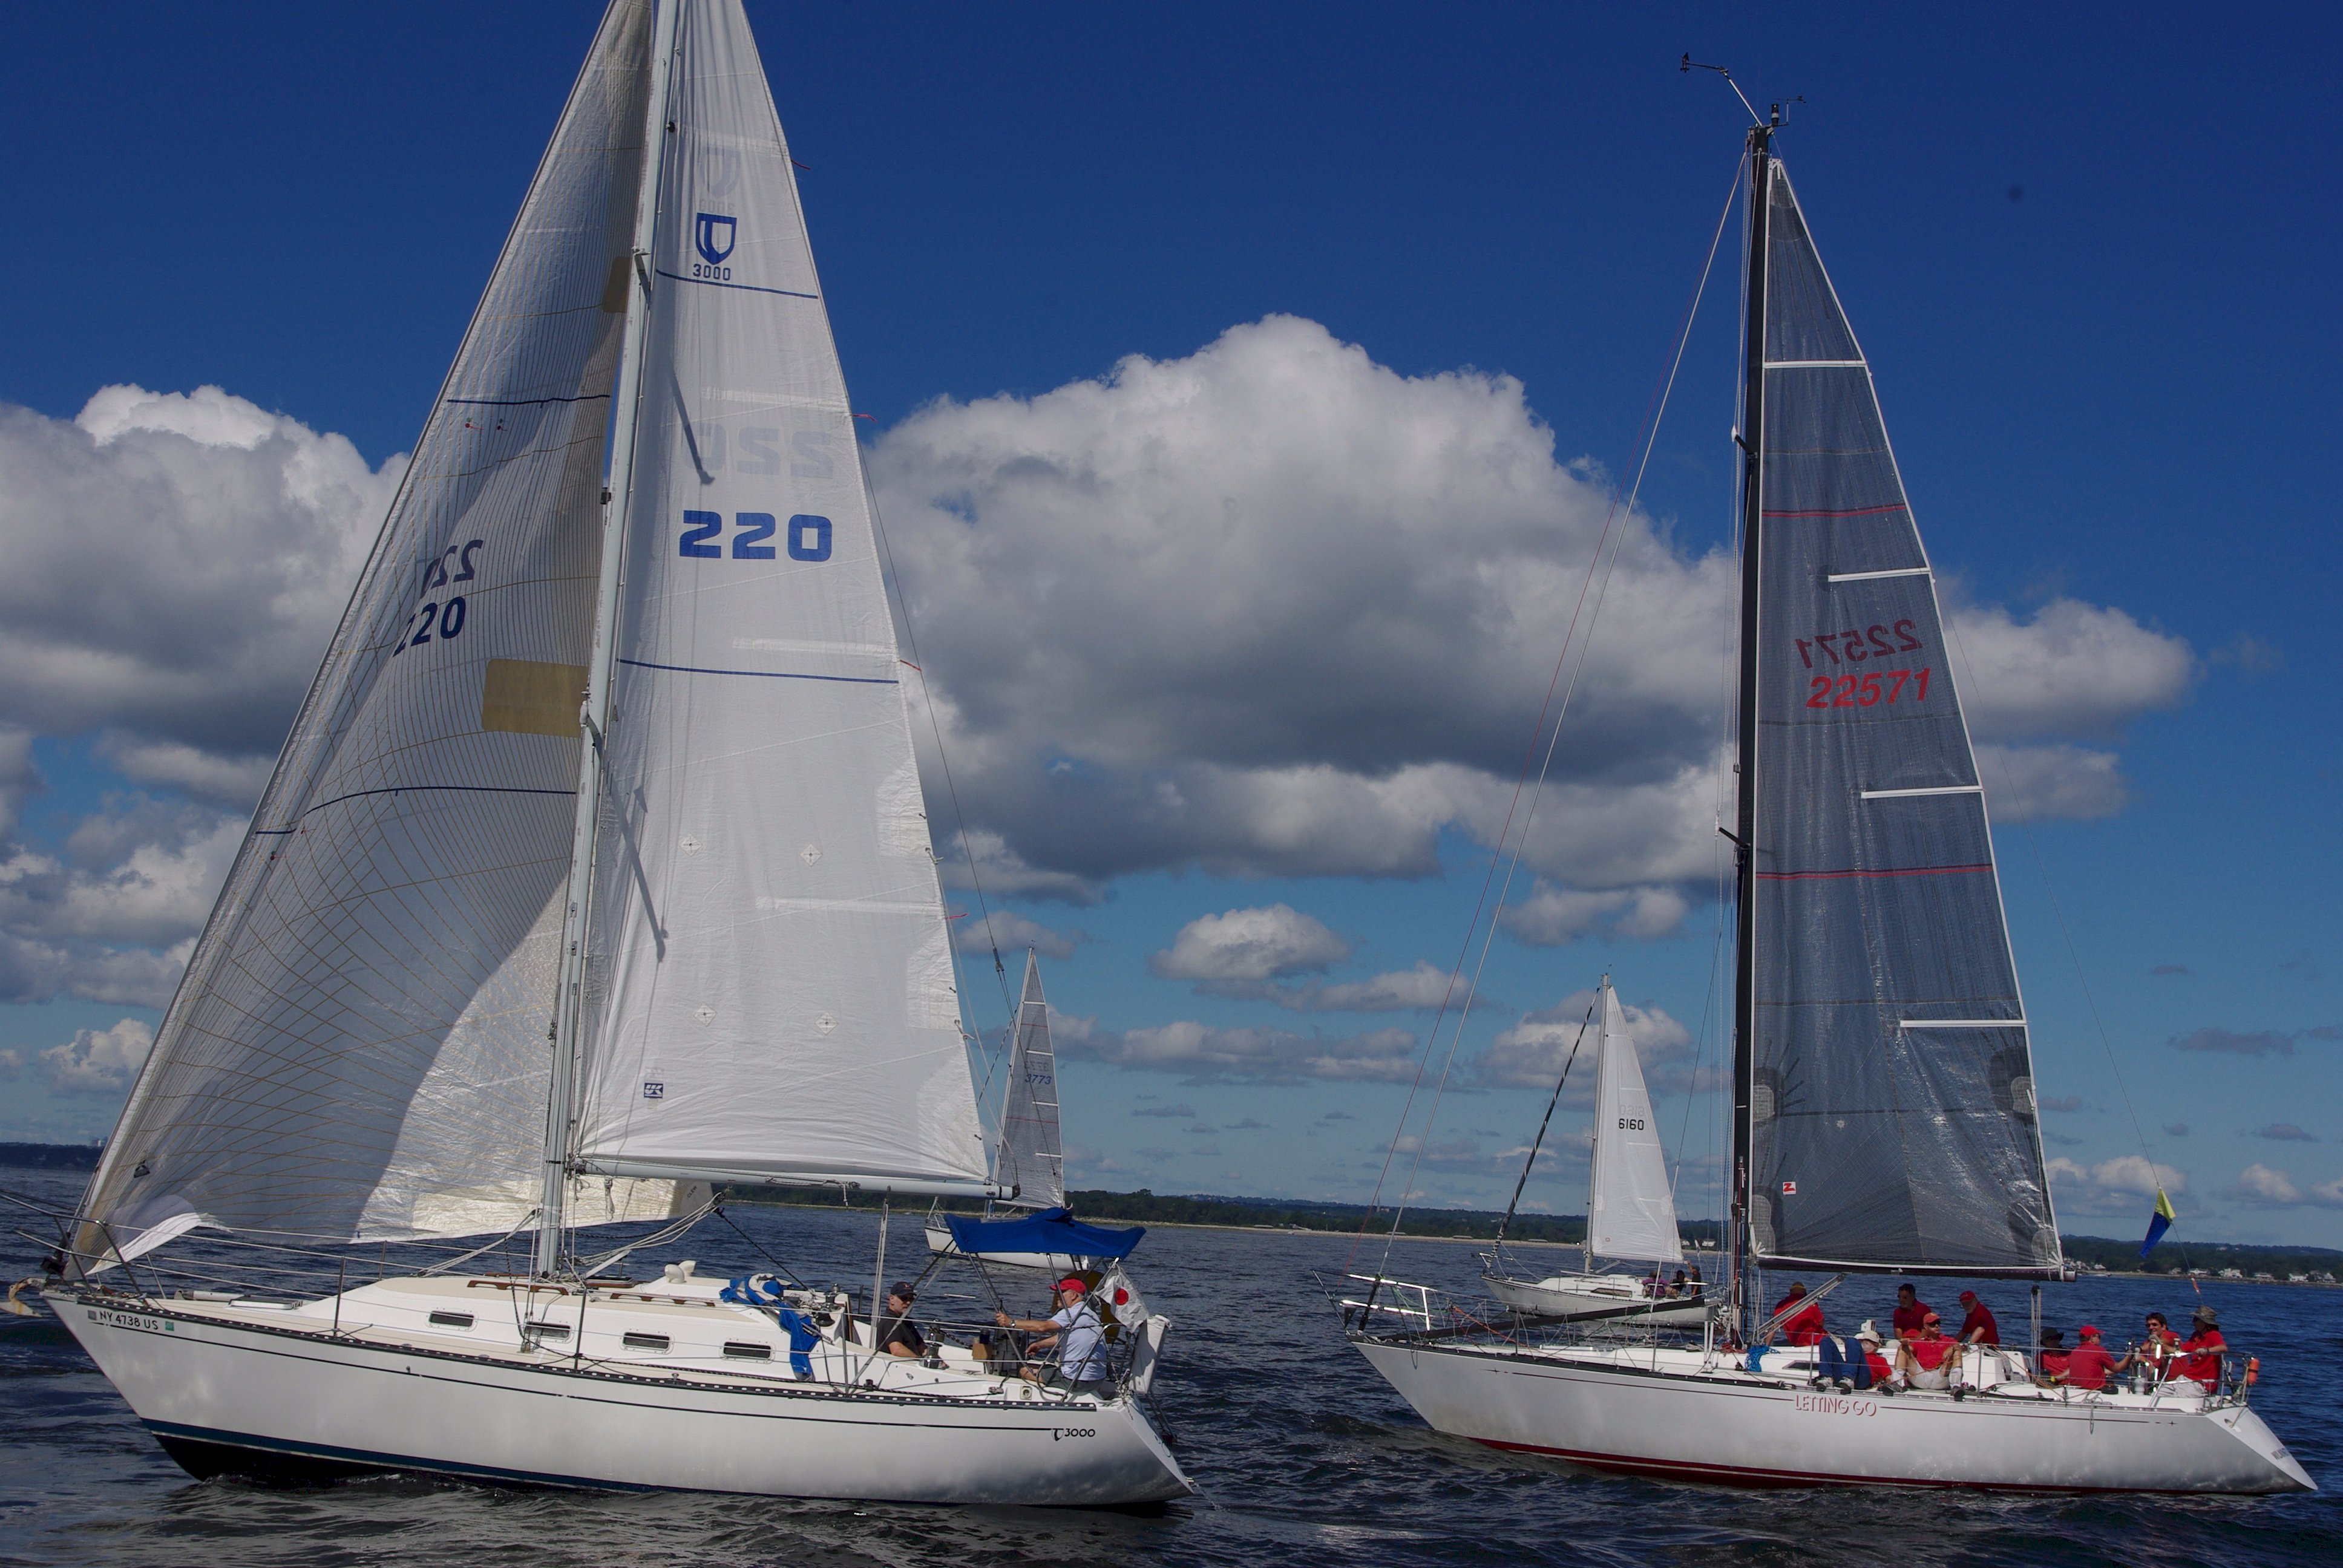 On Sunday, September 9th, 2012, 84 boats participated in the 47th Valeur-Jensen Stamford Denmark Race. (File Photo by Kirsten Vibe Philippides)